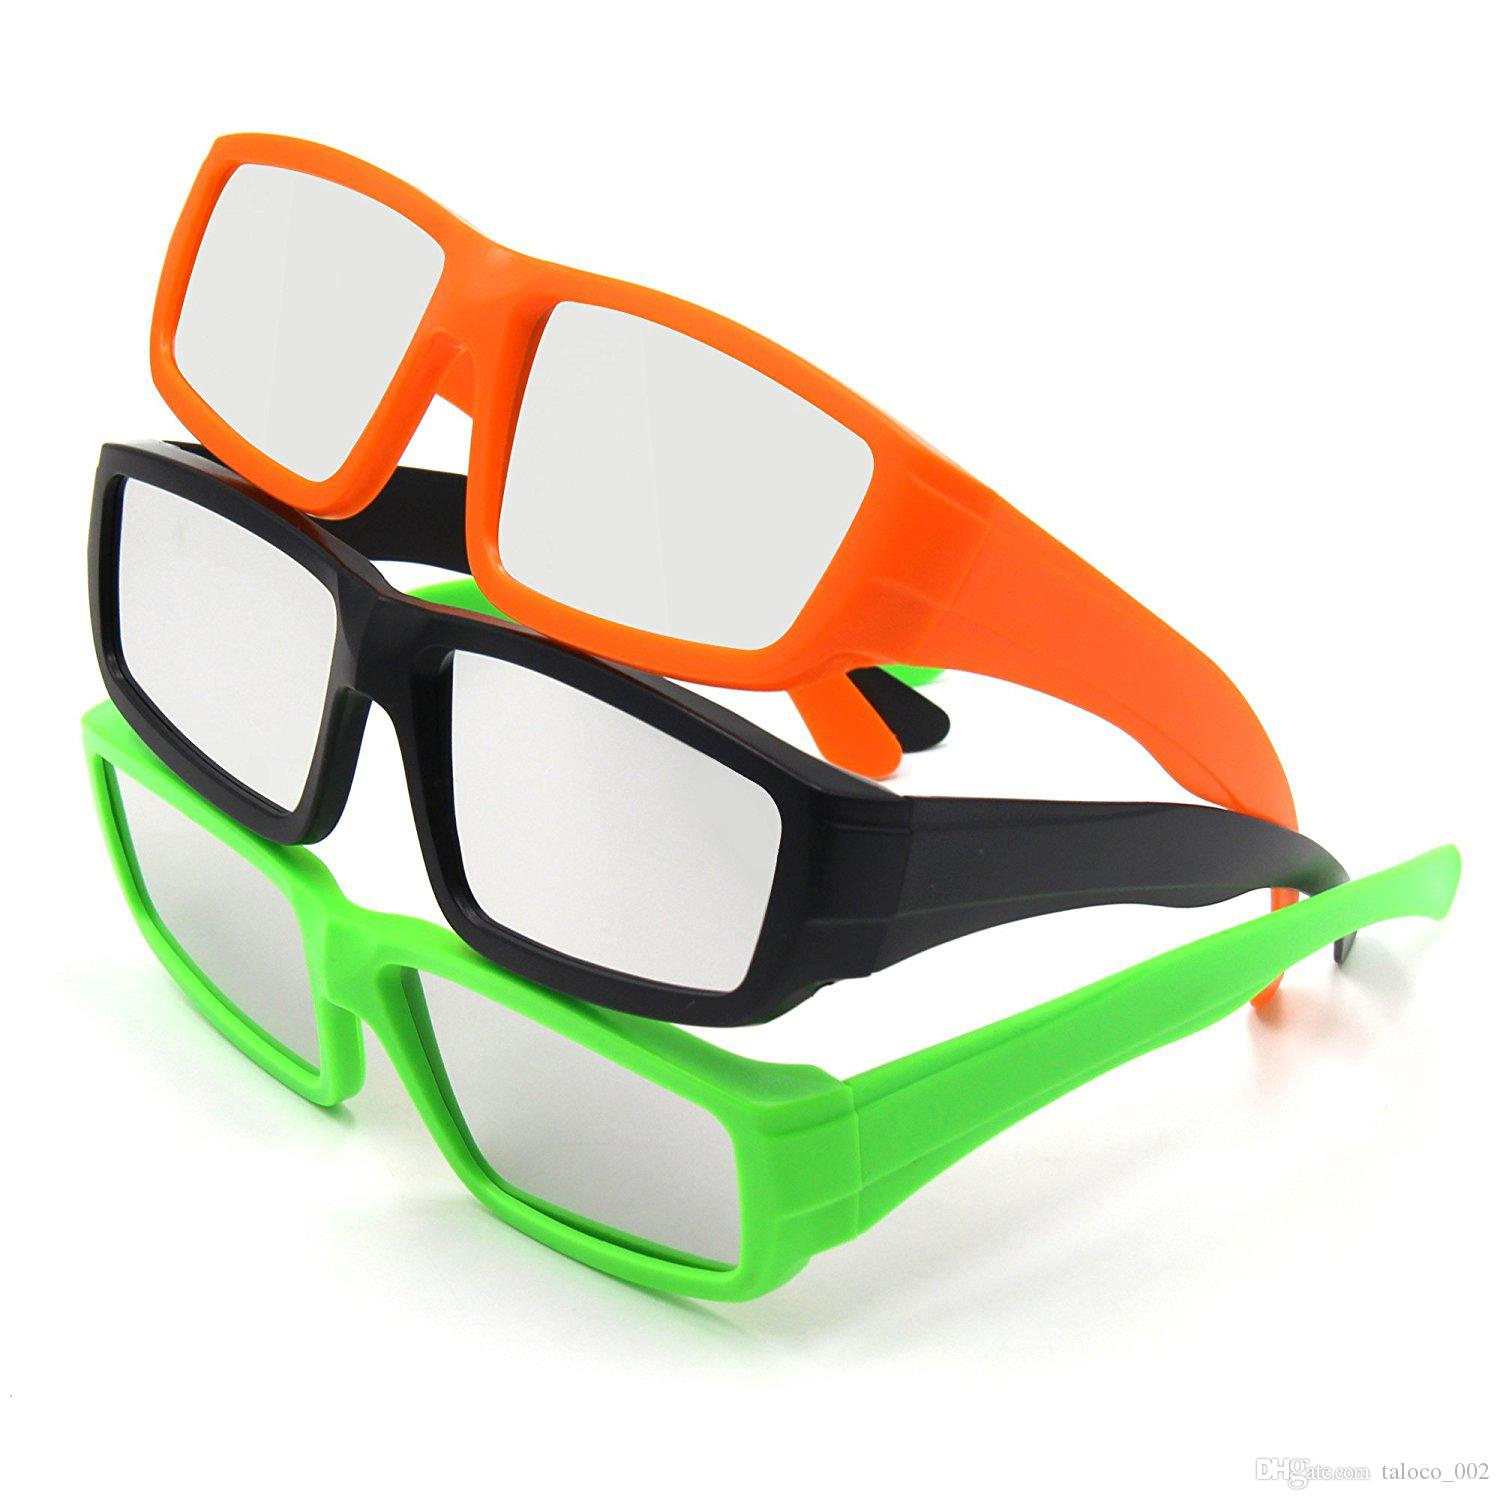 Fast US FBA SHIPPING 1-3 DAY OF DELIVERY - Onethe 2017 solar Eclipse Glasses - ISO & CE Certified Safe Solar Eclipse Glasses